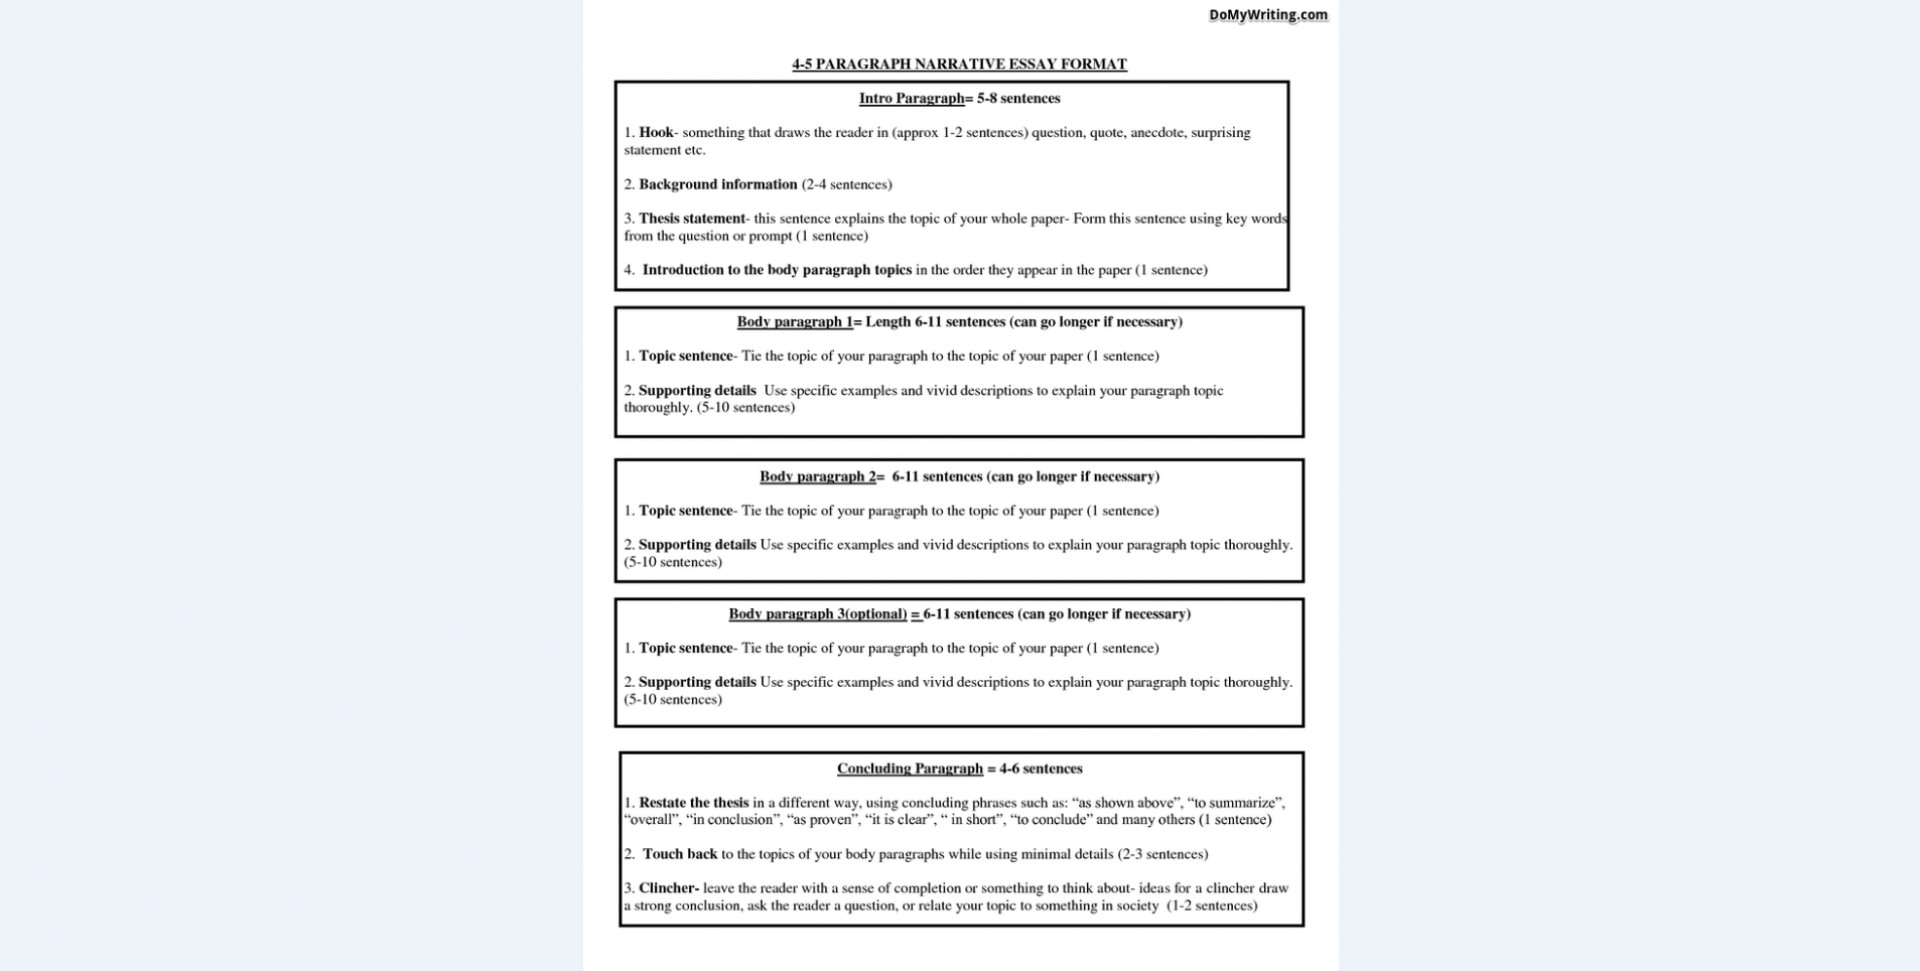 008 Narrative Essay Format Exceptional Sample Spm Structure Pdf 1920